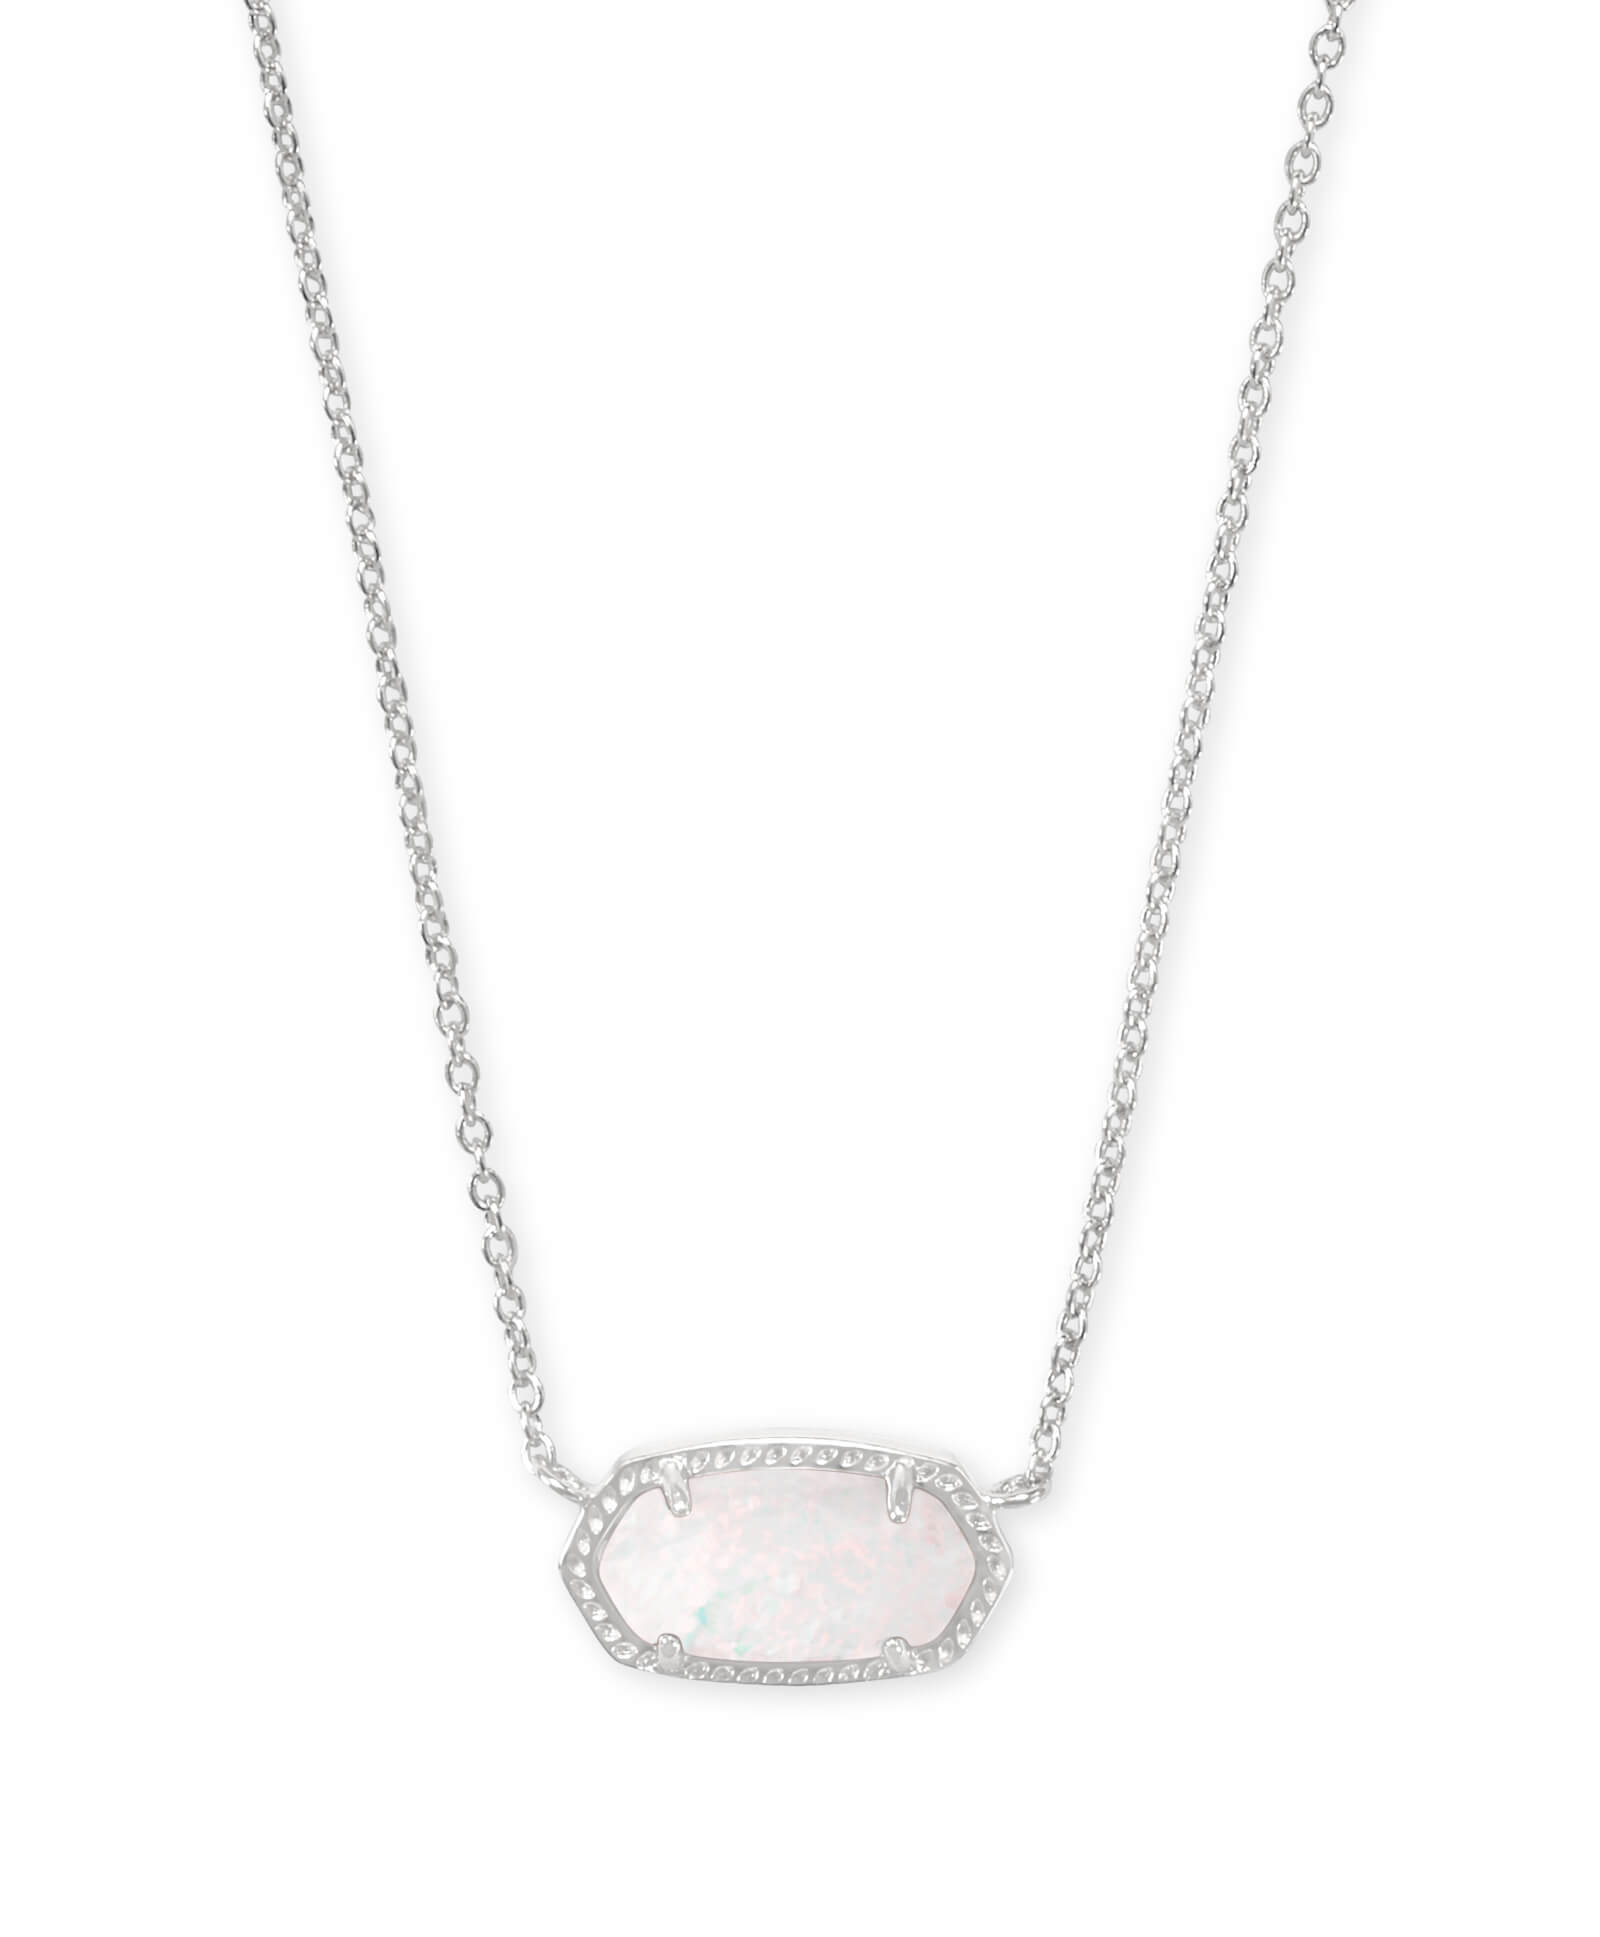 Elisa Silver Pendant Necklace in White Kyocera Opal